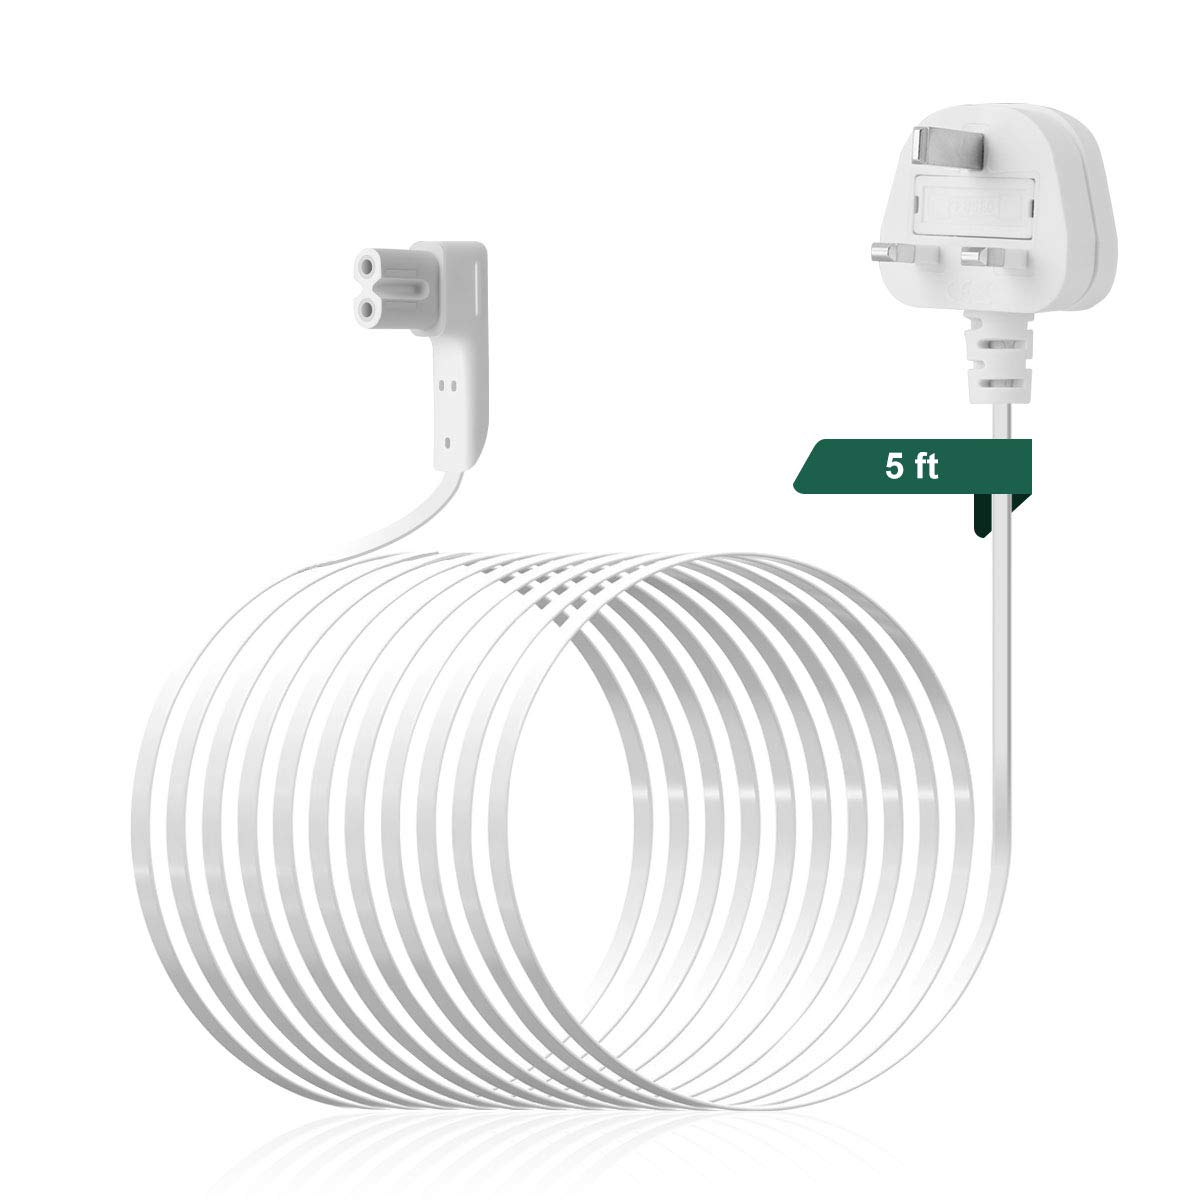 Sonos One and PLAY1 Flexson 5m Power Cable White